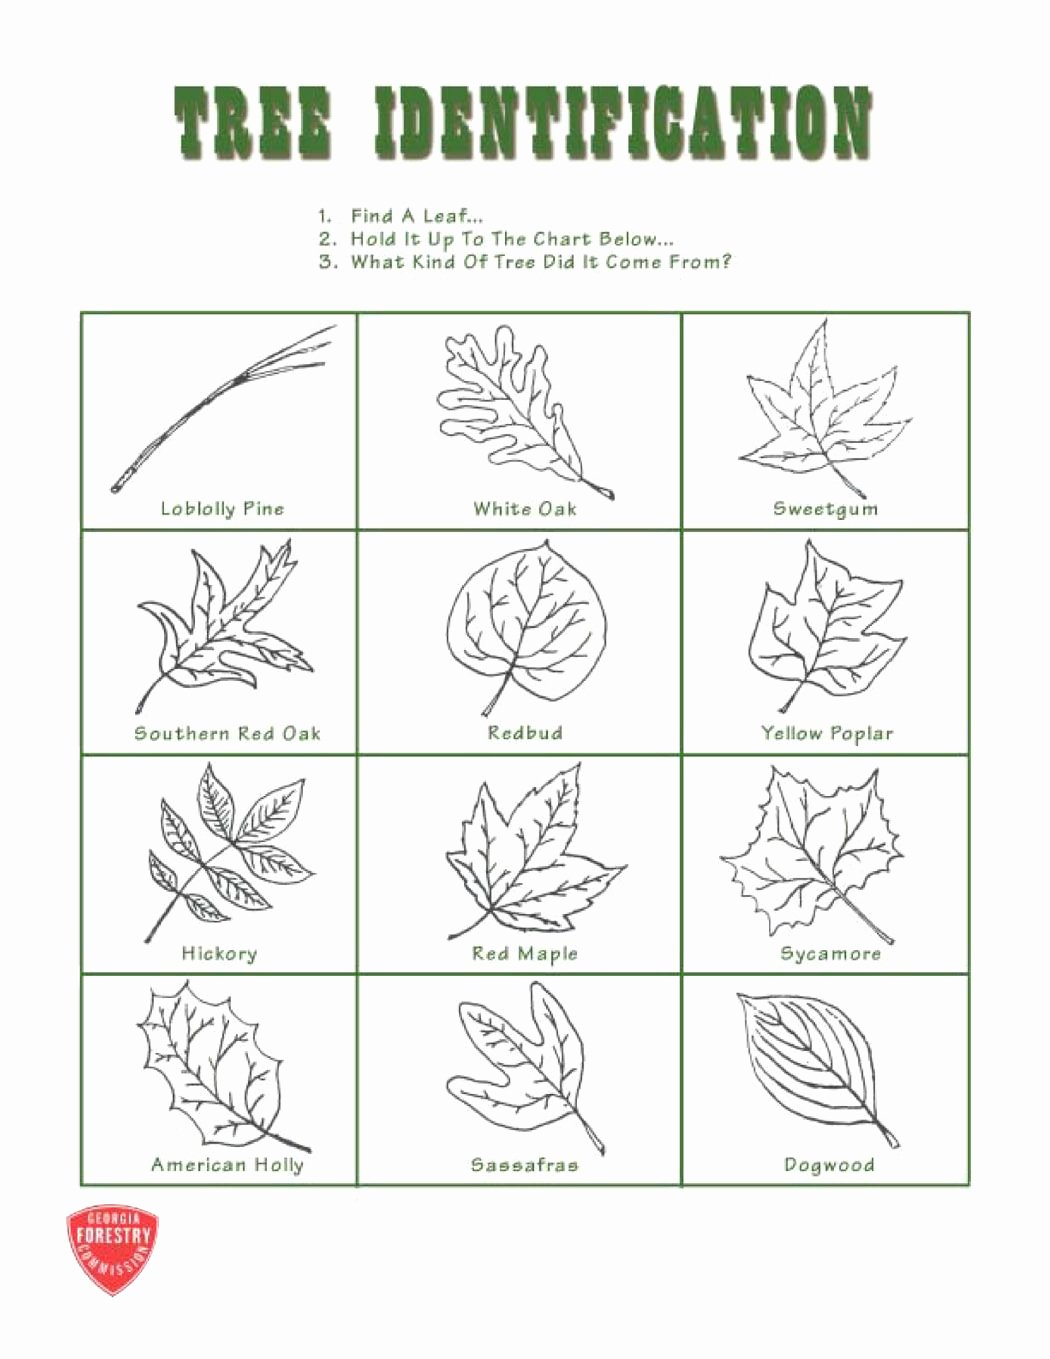 The Nature Of Science Worksheet Luxury Tree Identification On Pinterest